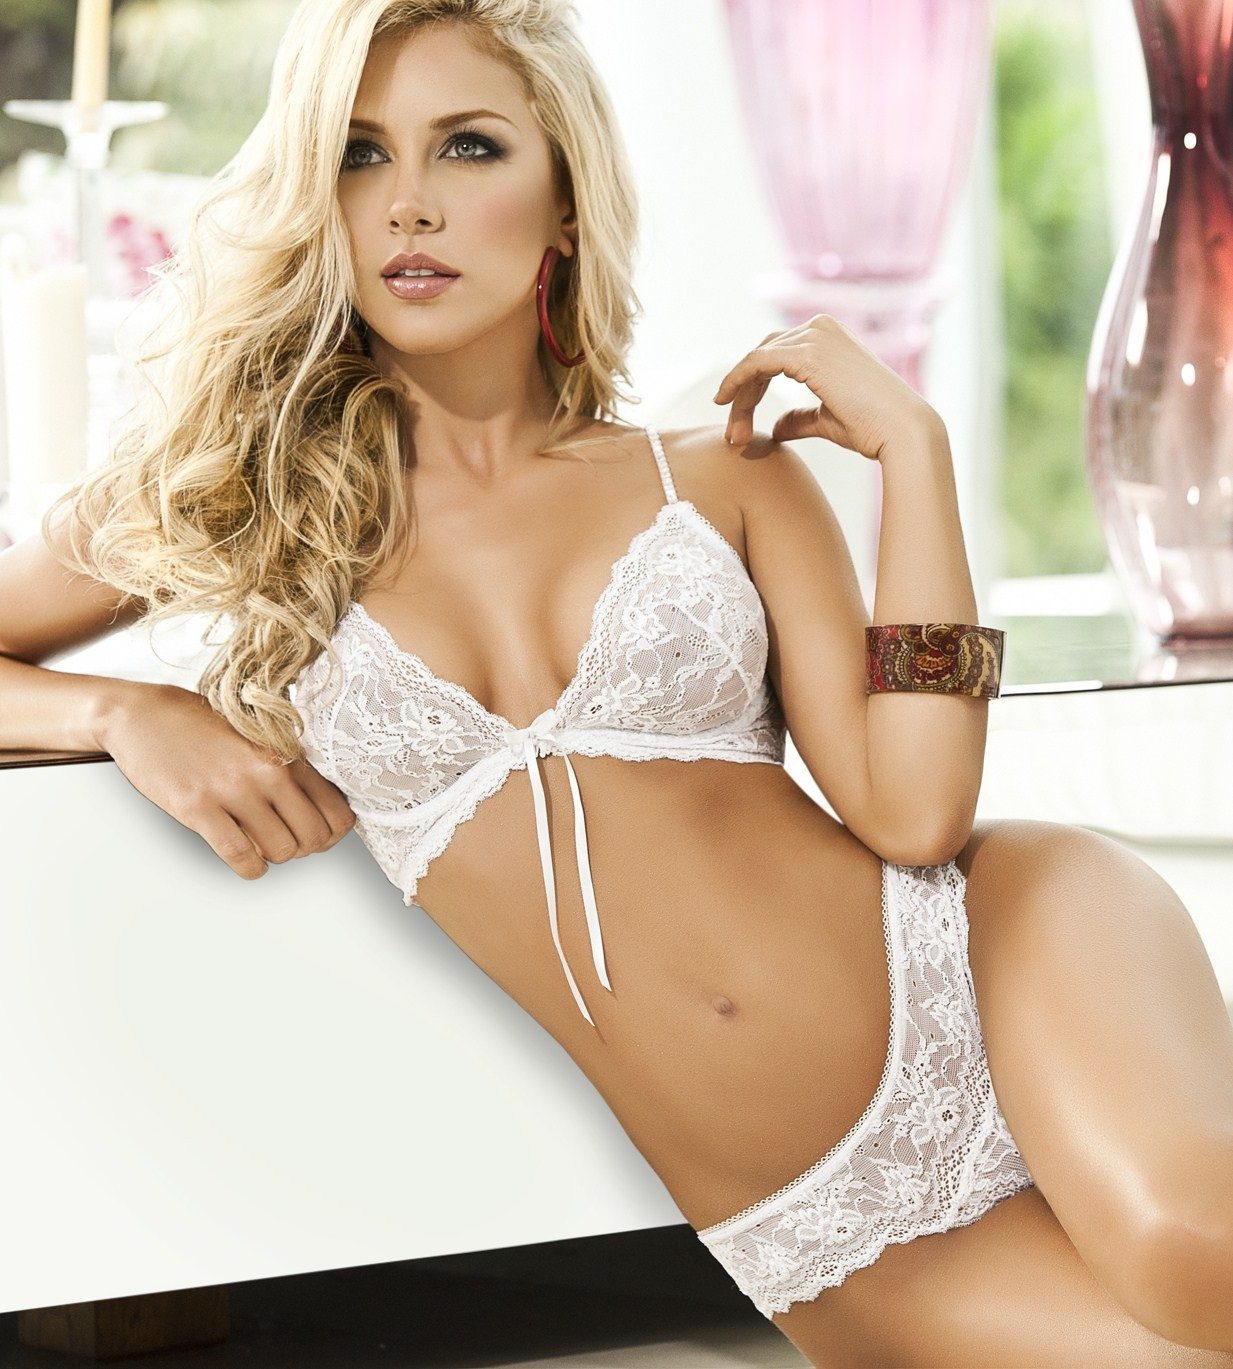 Pin Colombian Models Daniela Tamayo On Pinterest Wallpaper Pictures to ...